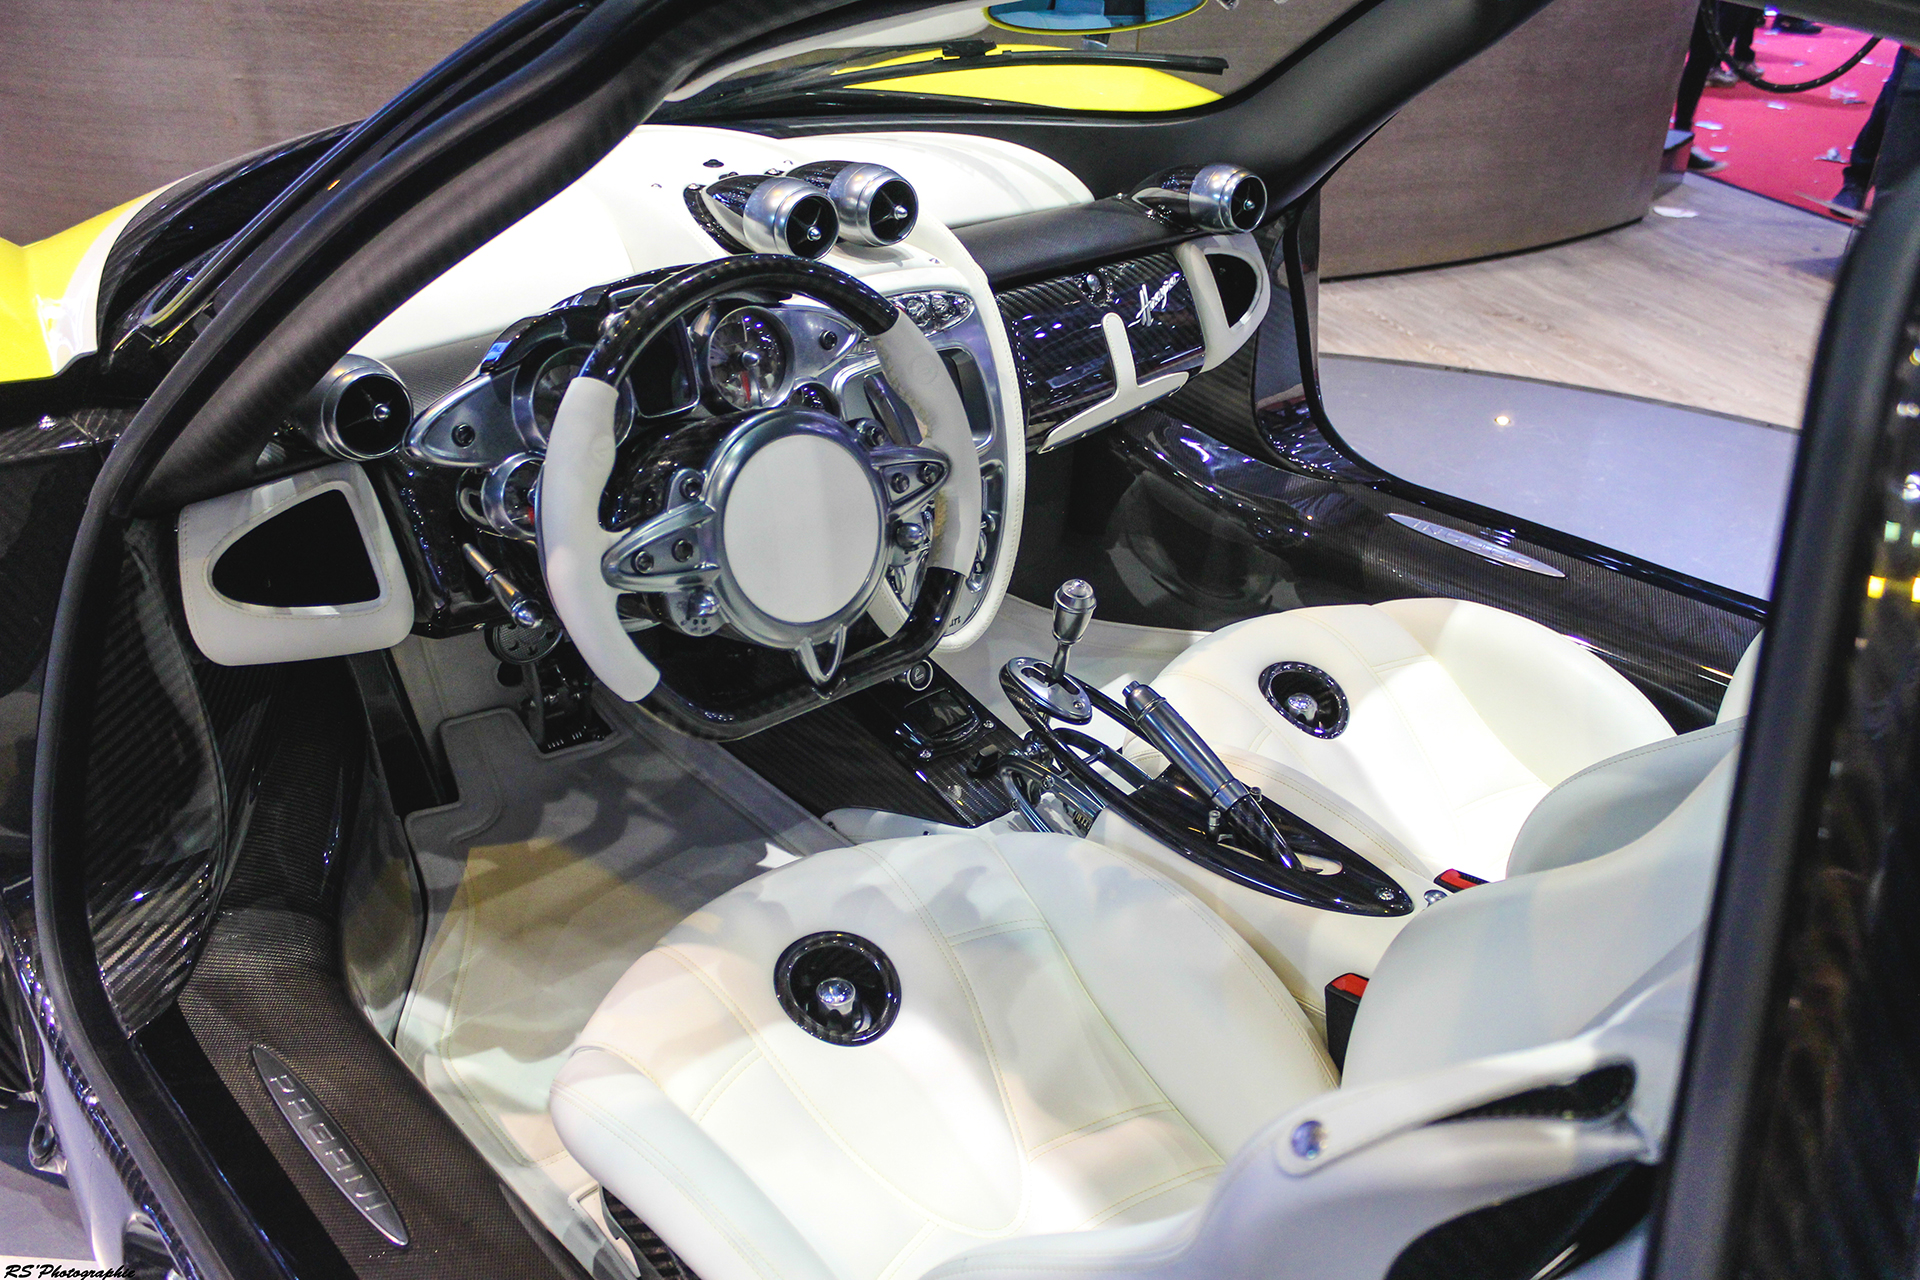 Pagani - interior - Geneva 2016 - Arnaud Demasier RS Photographie